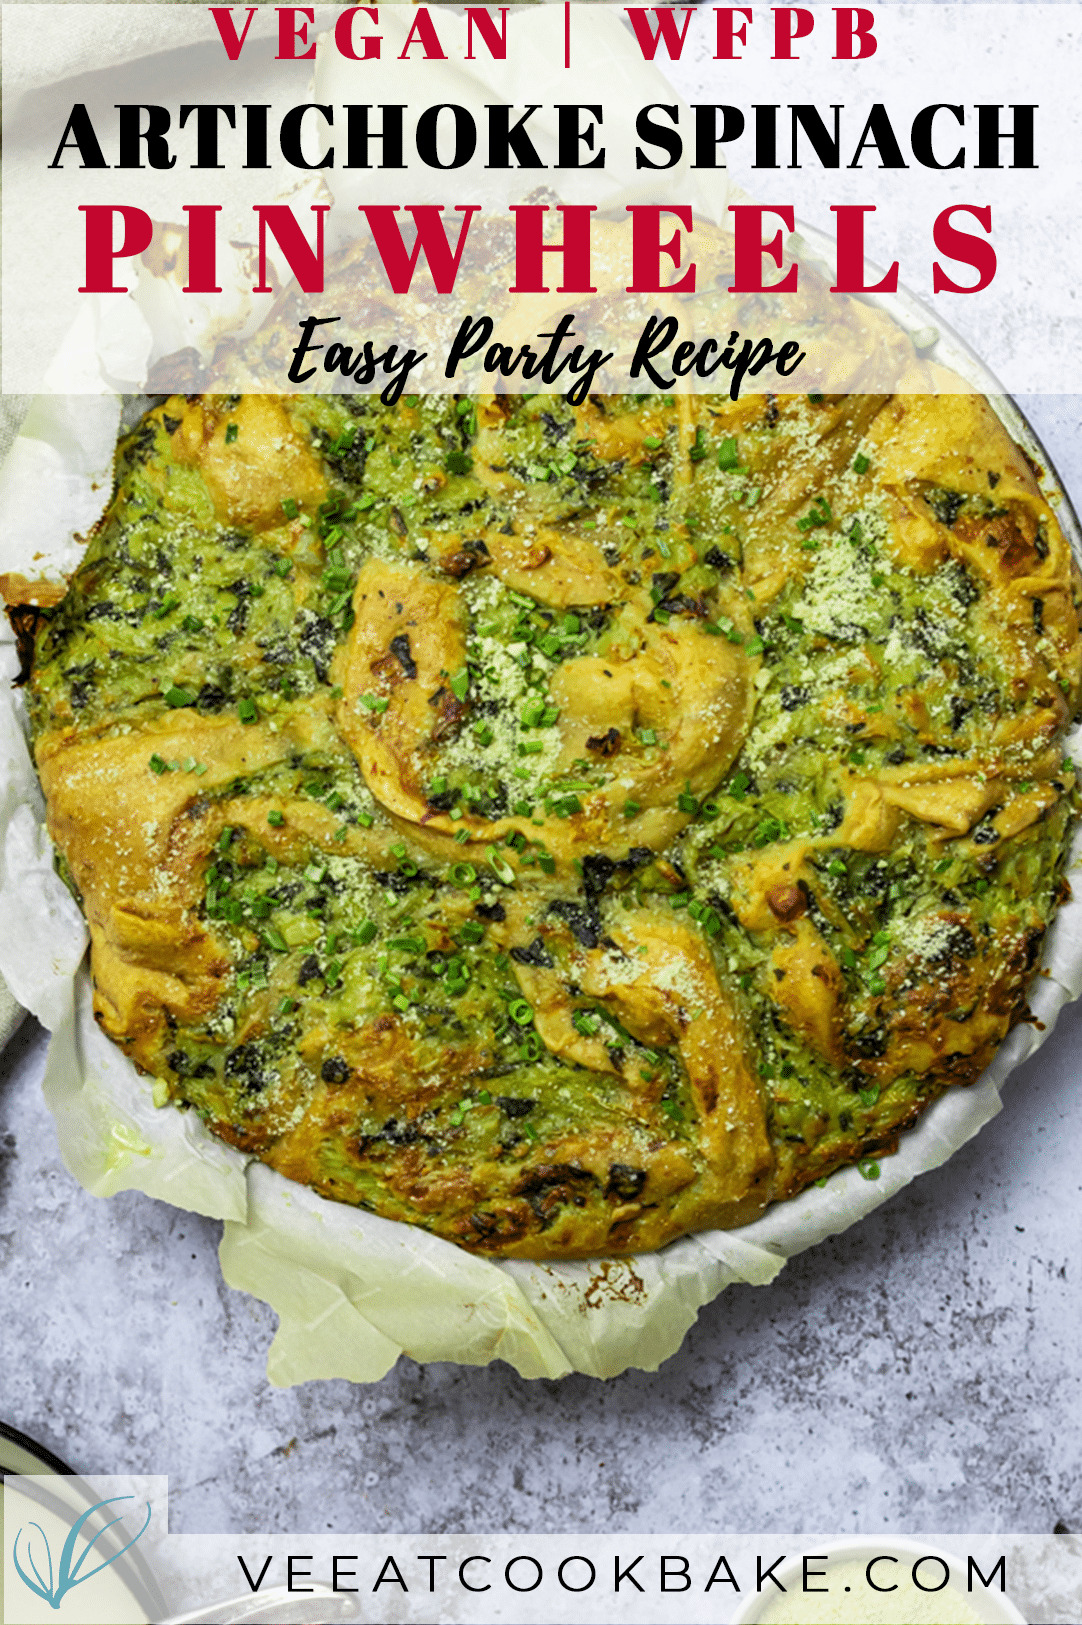 Graphic for vegan artichoke spinach pinwheels with text layover